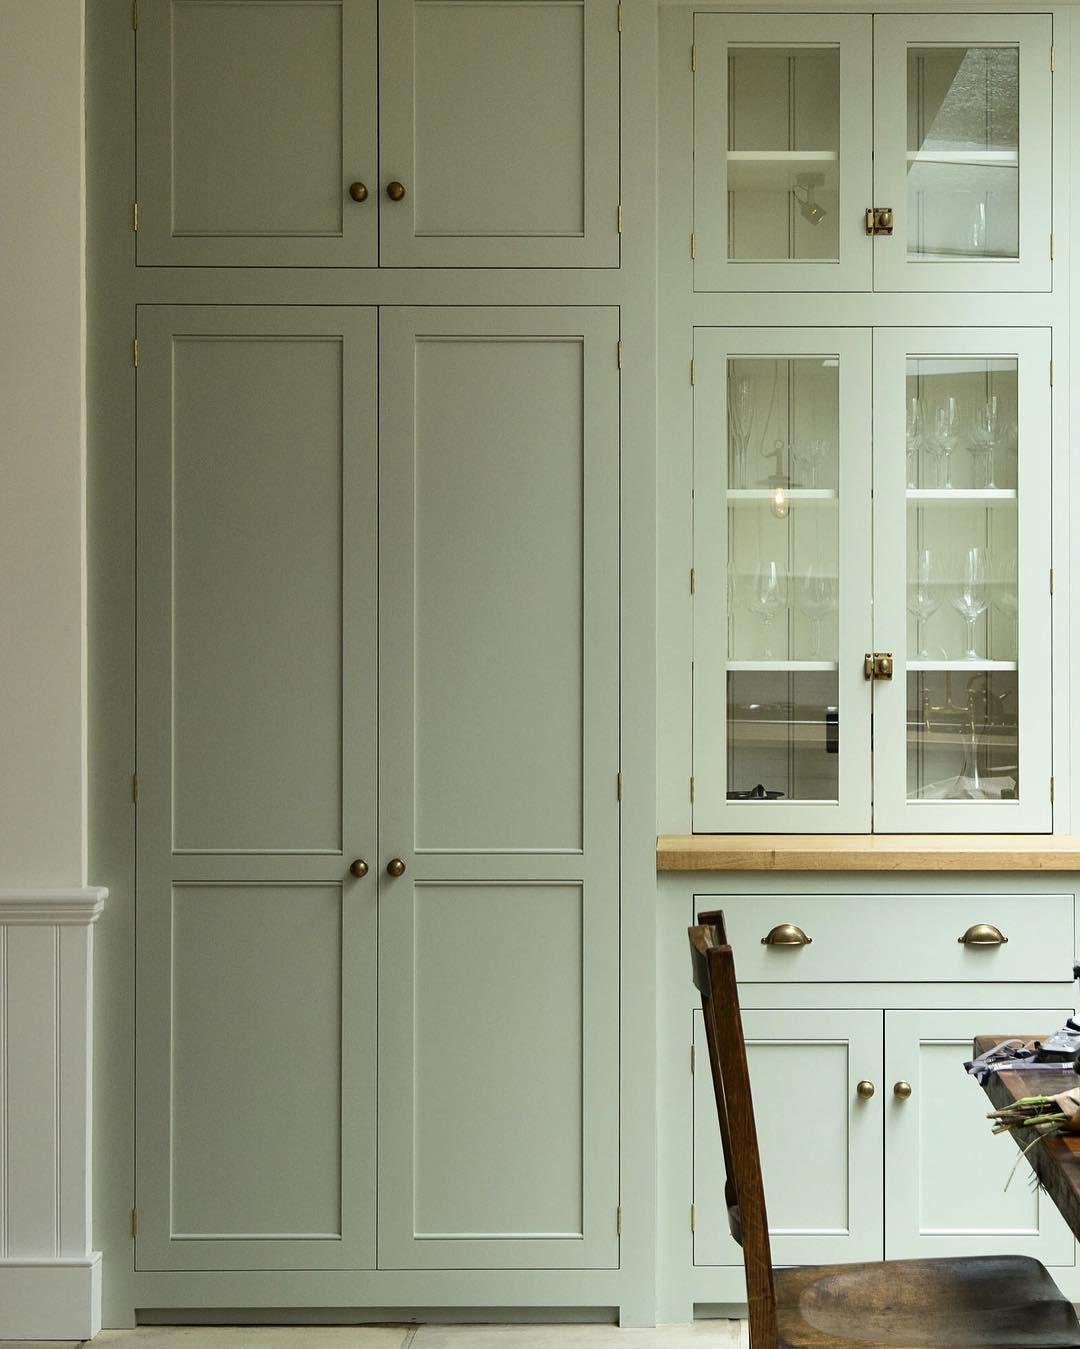 Ultimate Kitchengoals Beautiful Bespoke Floor To Ceiling Fitted Cabinets Devolkitchens Classic Kitchens Devol Kitchens Fitted Cabinets